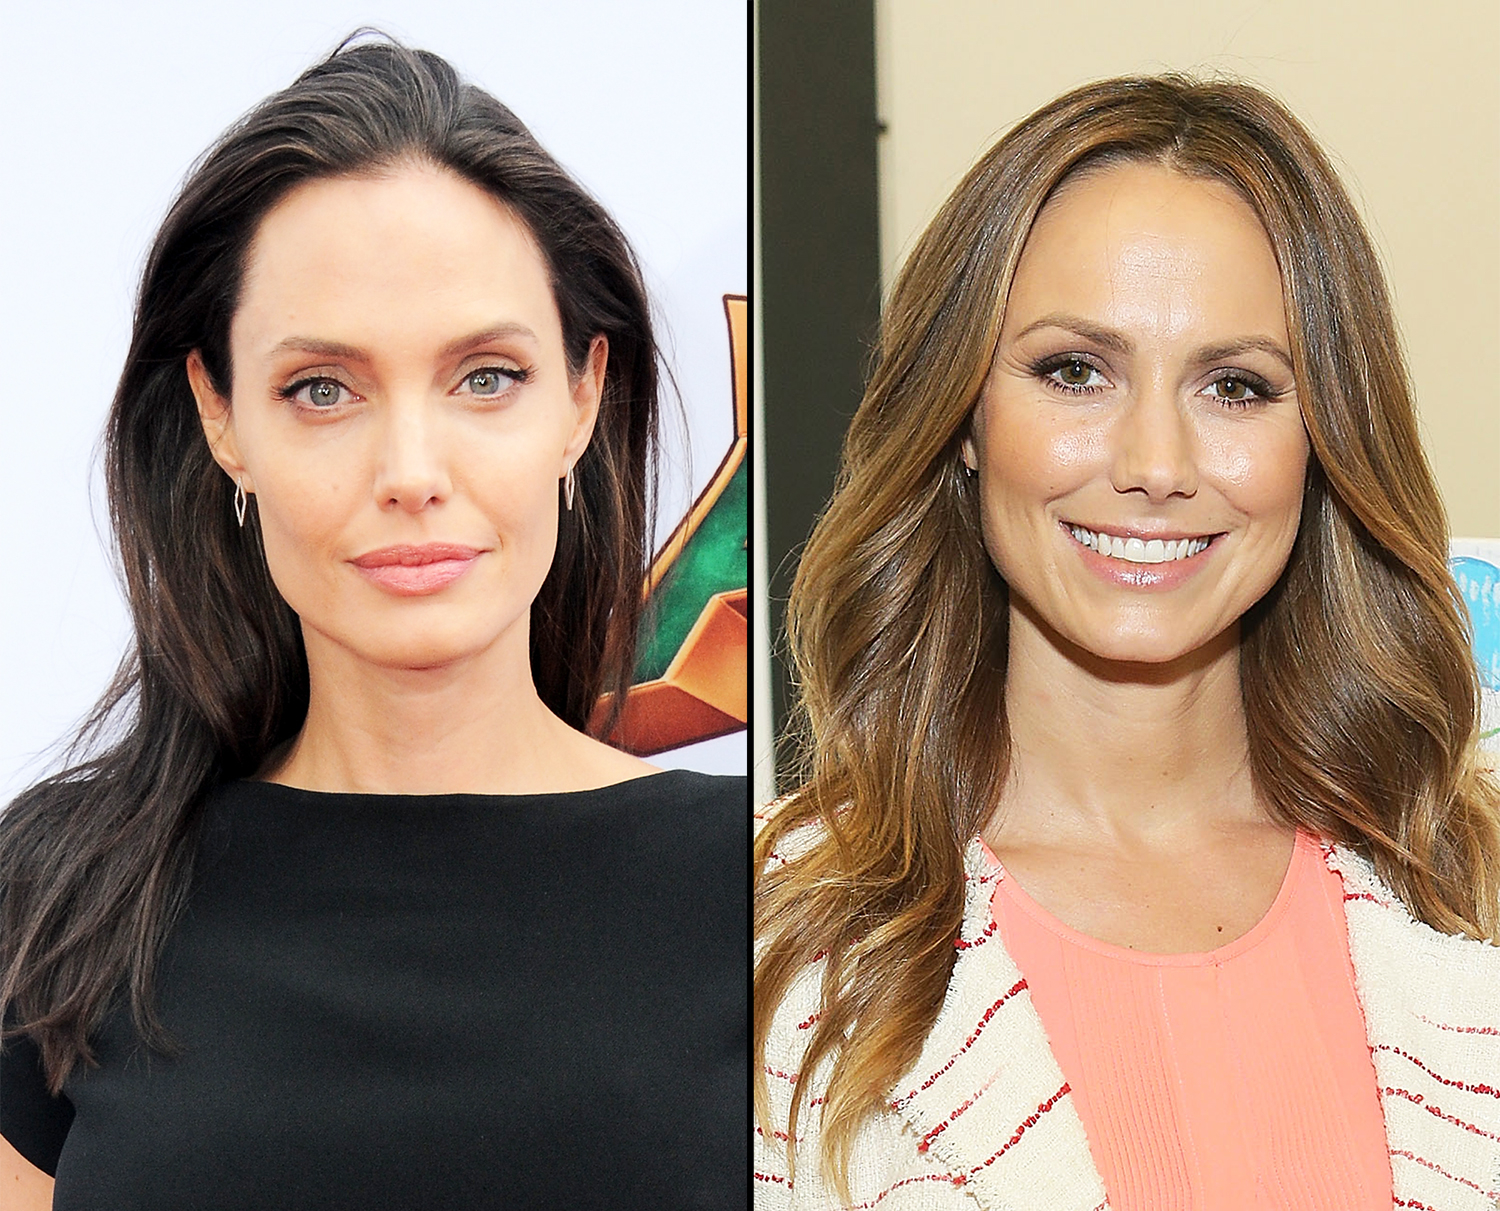 Angelina Jolie and Stacy Keibler